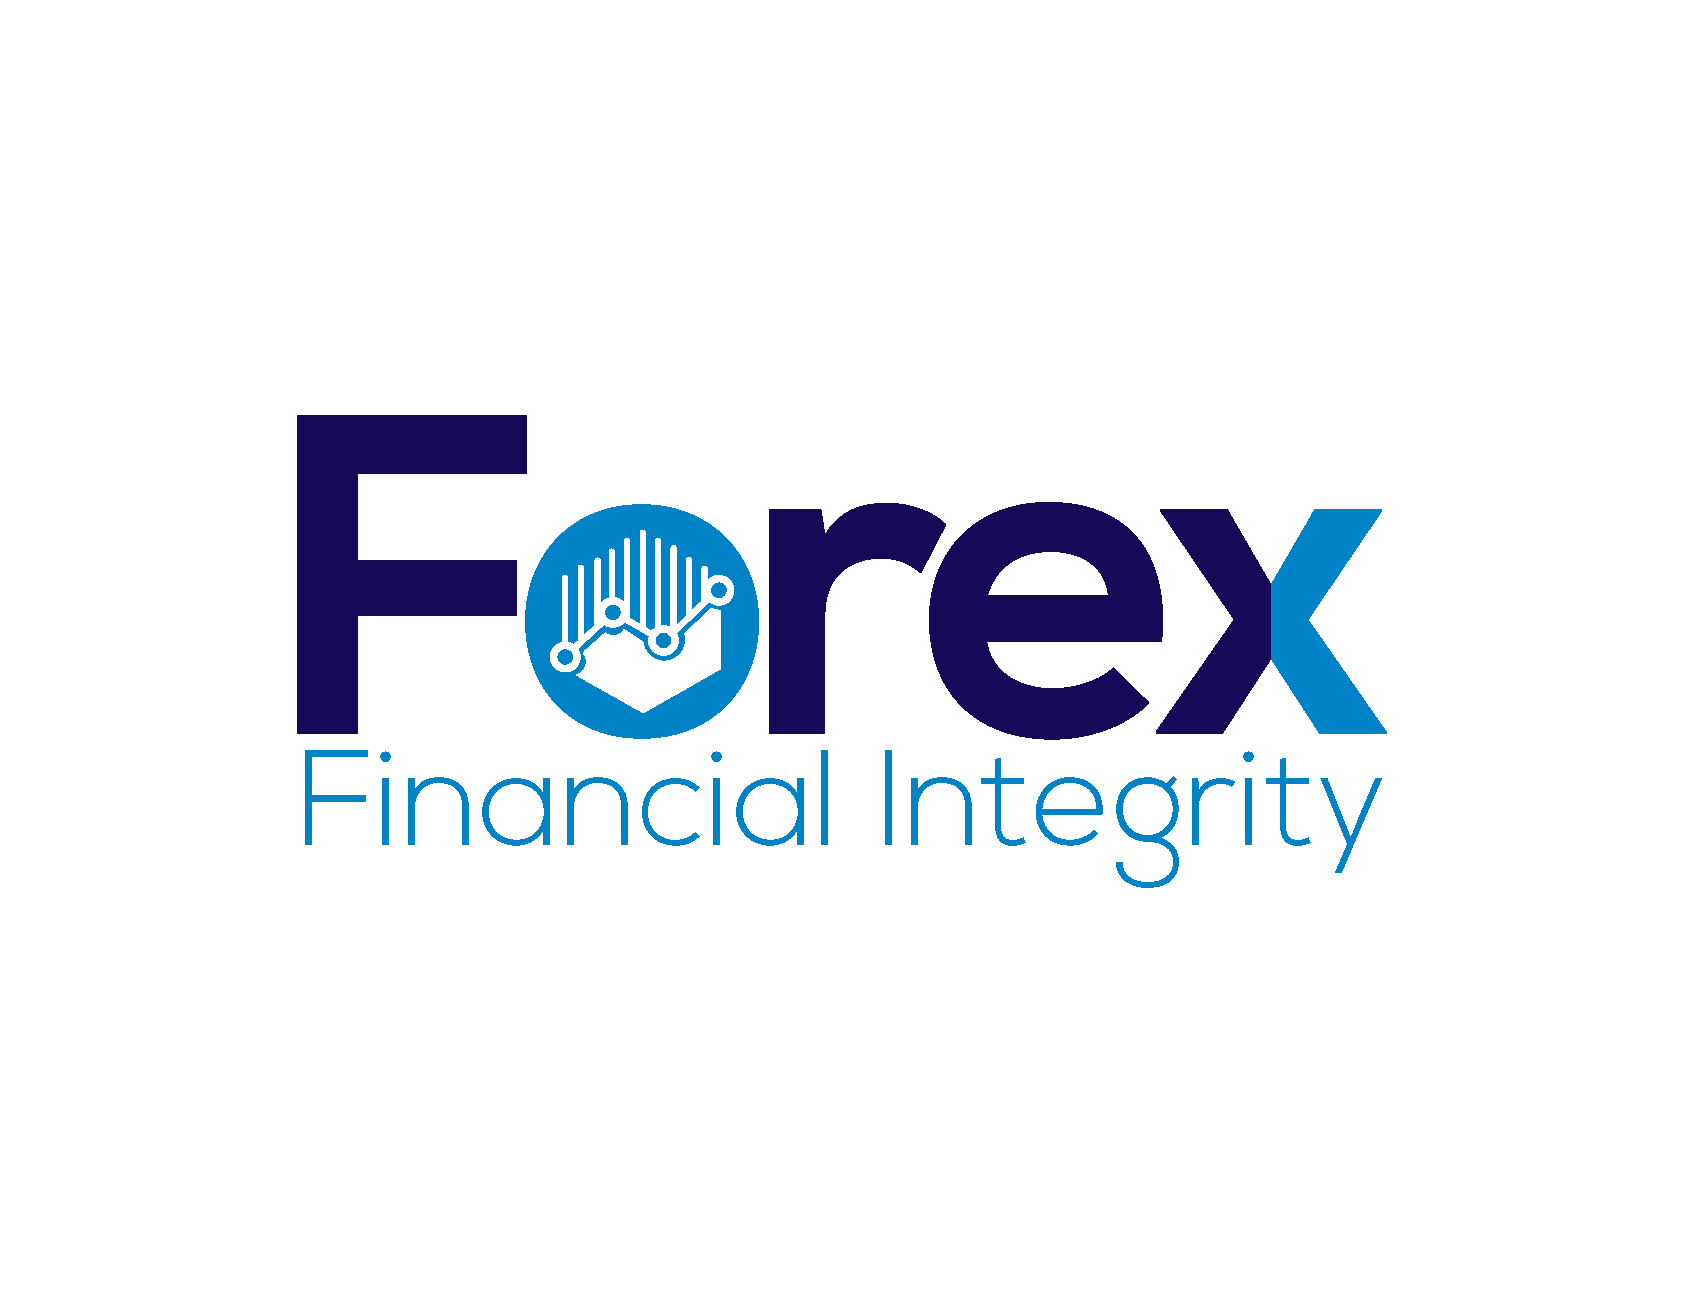 Logos for Financial Service (Designed by LogoSkill)